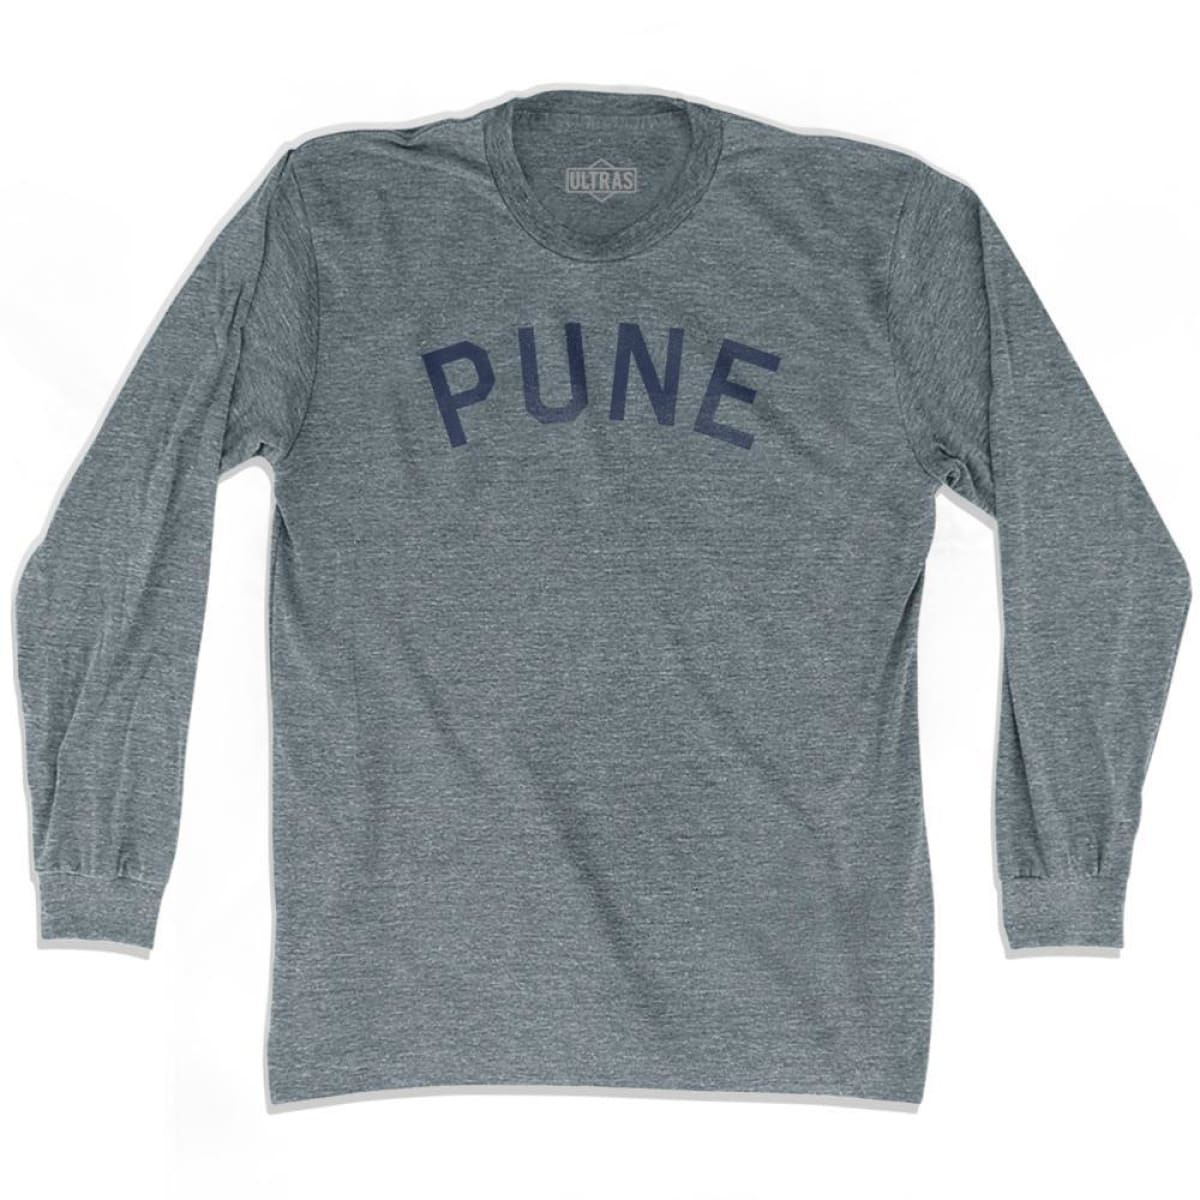 Pune Vintage City Adult Tri-Blend Long Sleeve T-shirt - Athletic Grey / Adult Small - Asian Vintage City